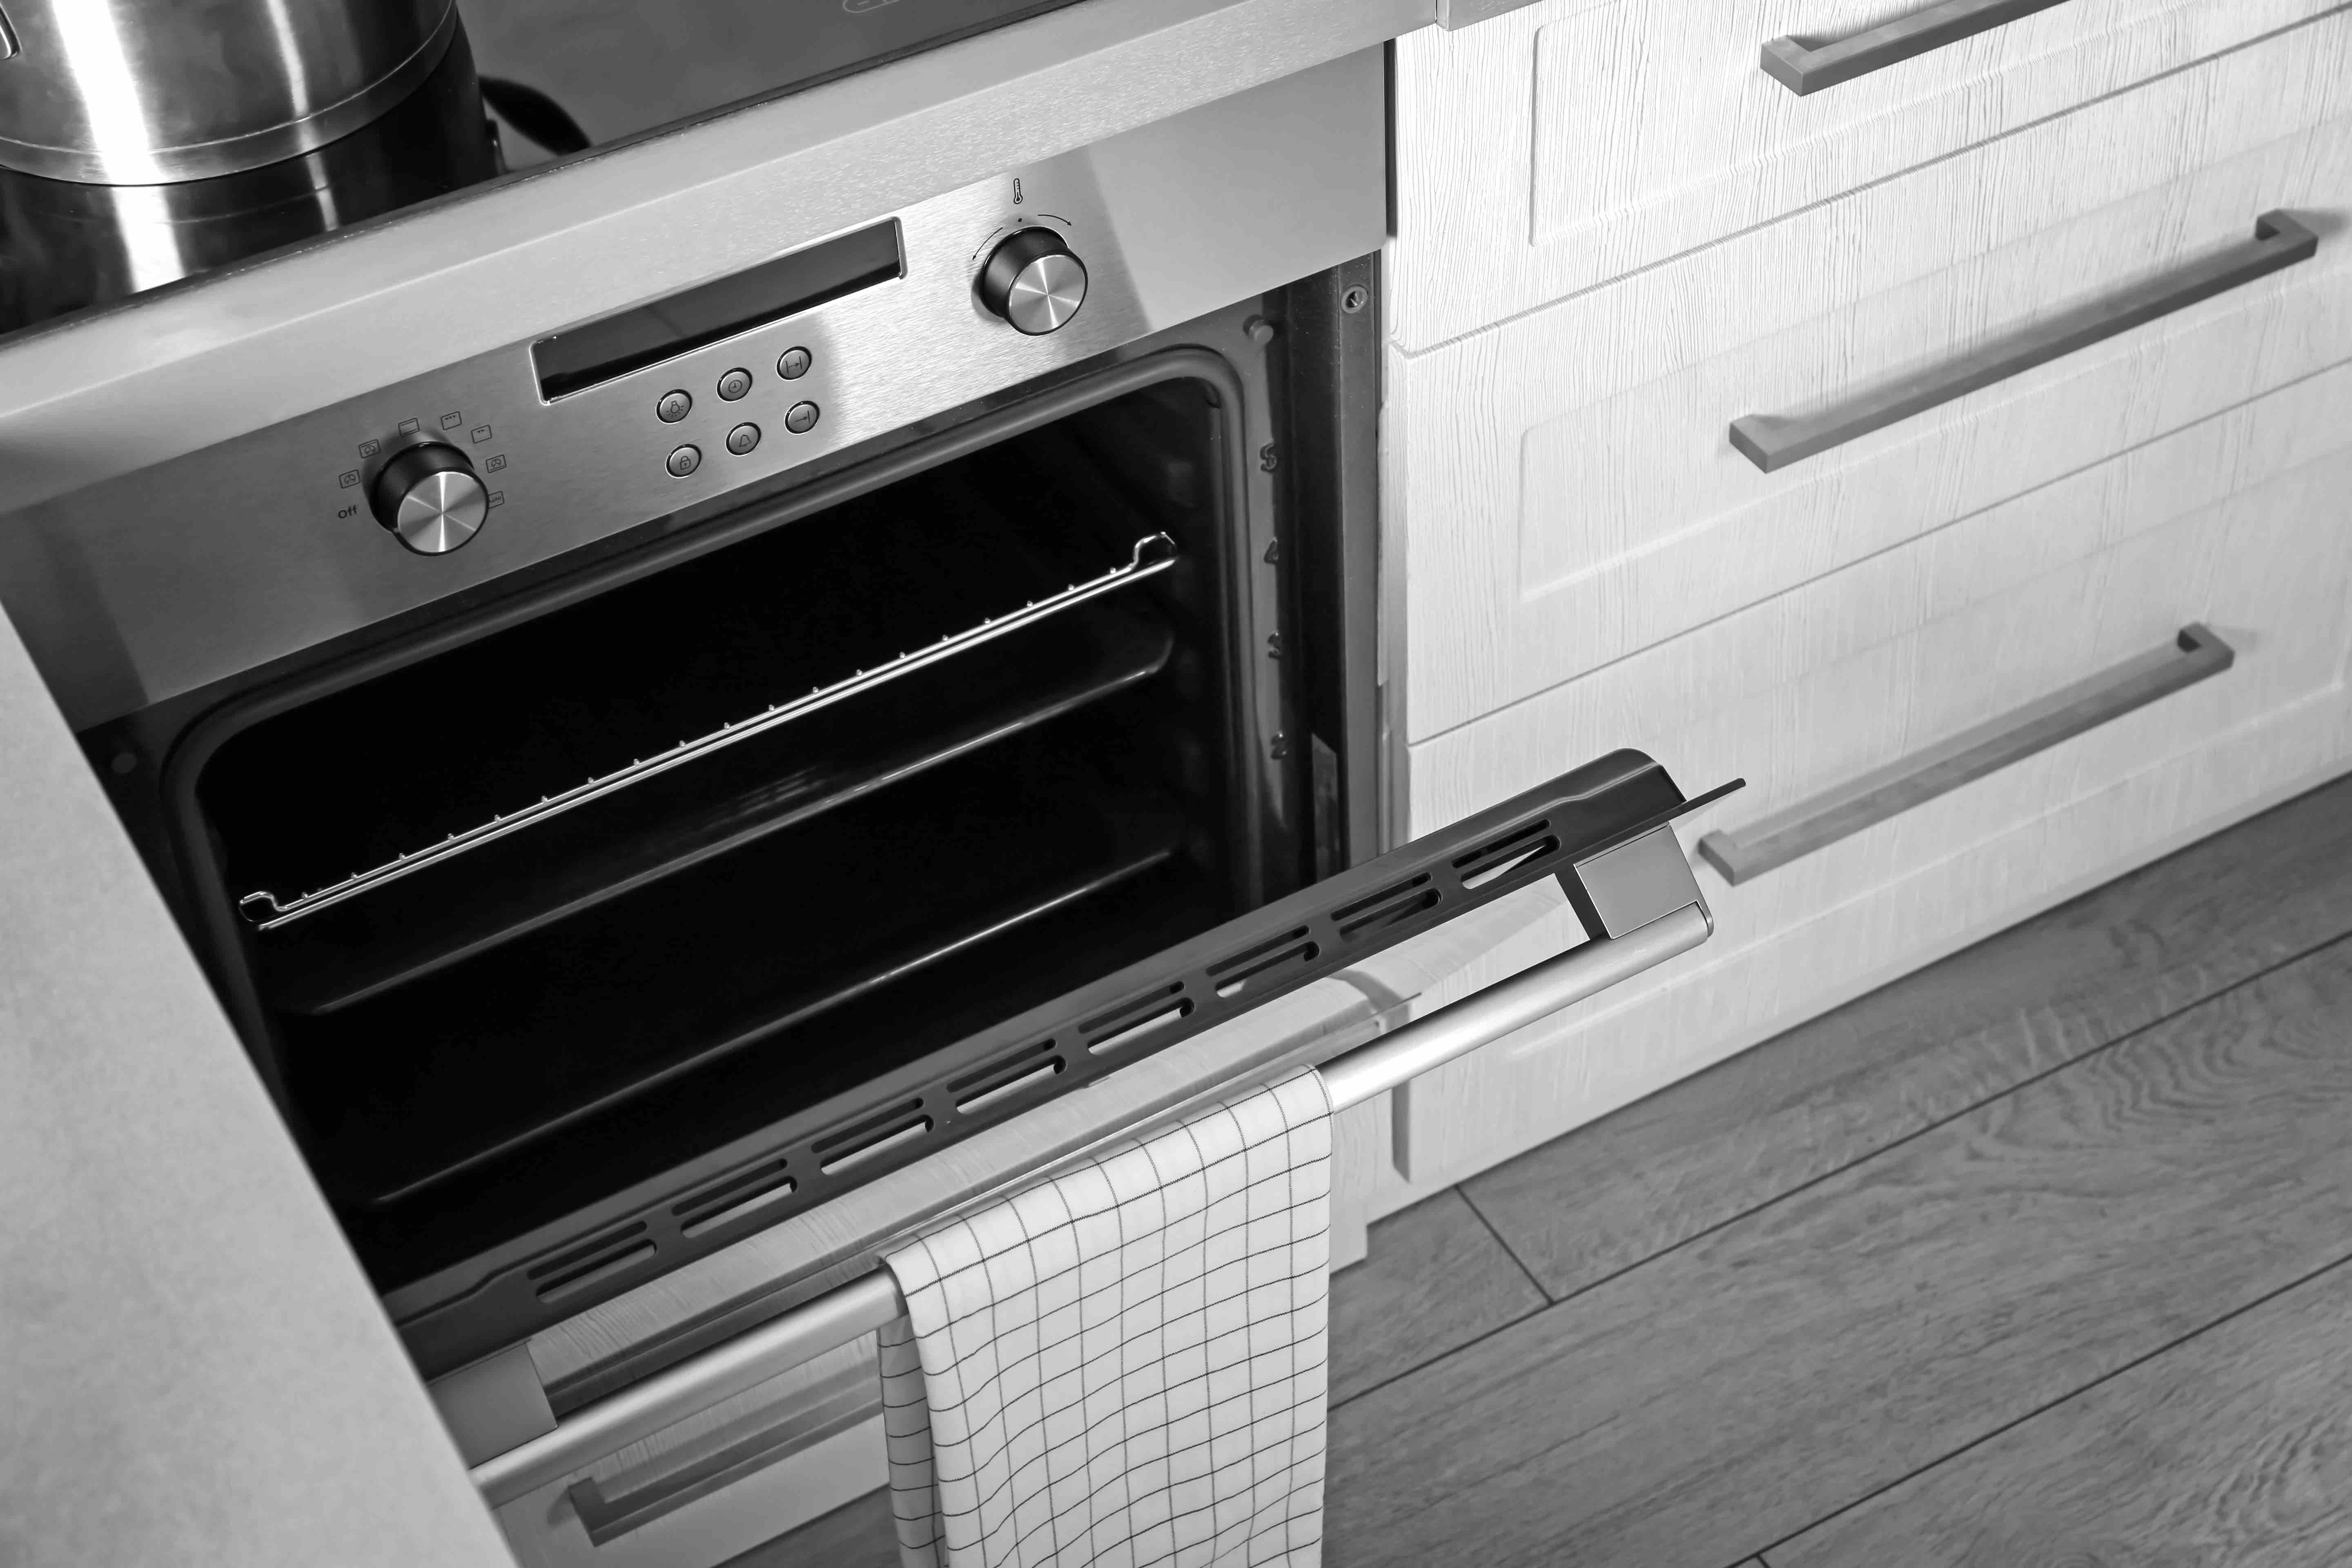 Clean and sparkling oven